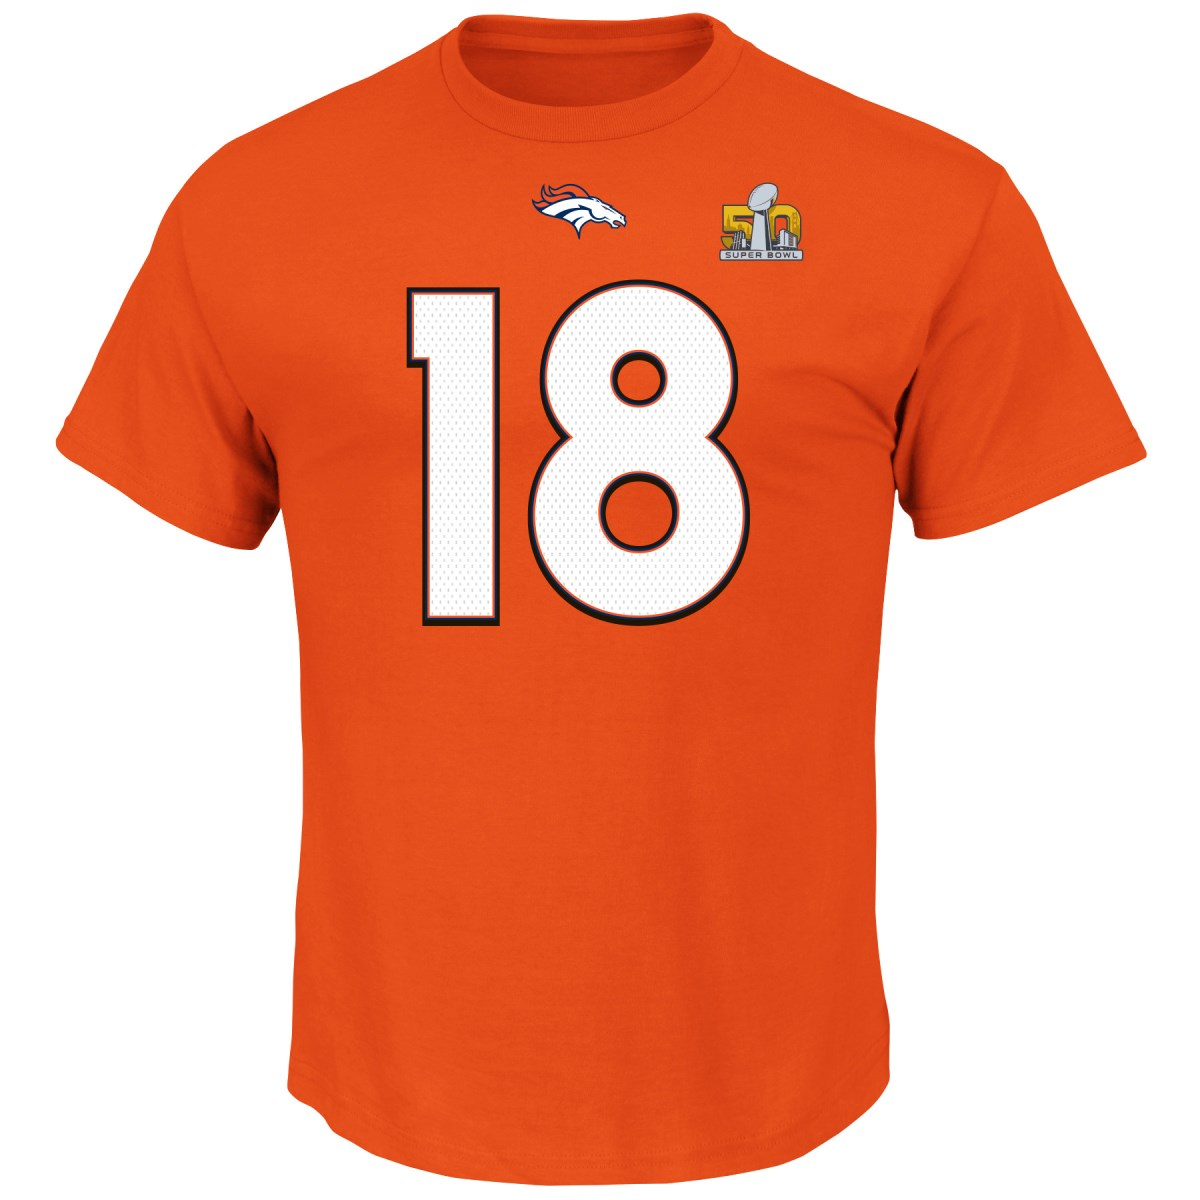 Peyton Manning Denver Broncos Majestic NFL Super Bowl 50 Player T-shirt